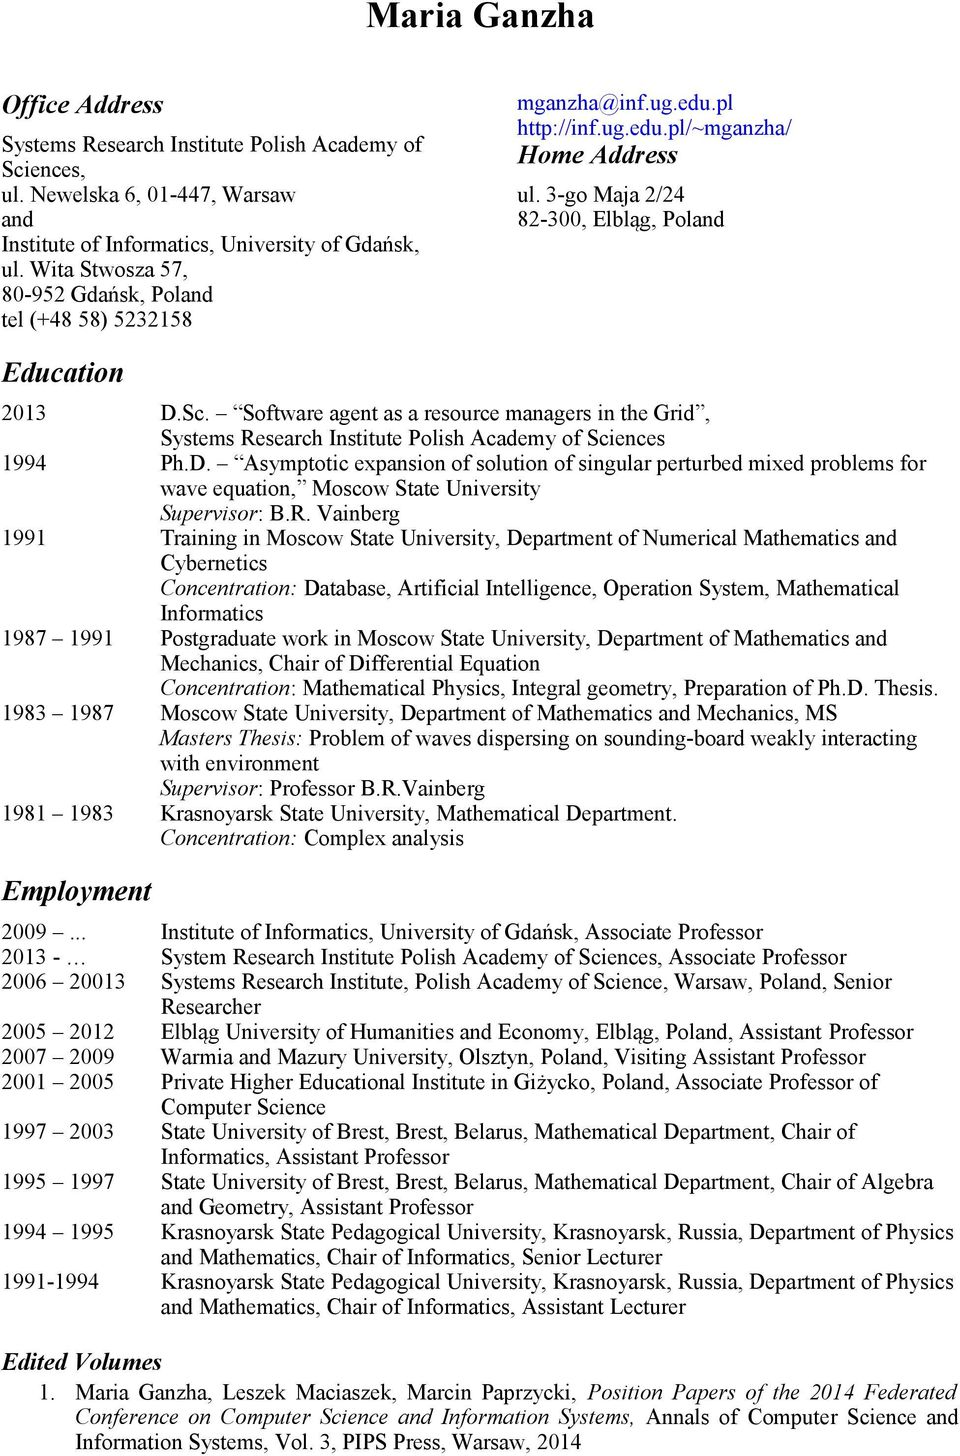 Software agent as a resource managers in the Grid, Systems Research Institute Polish Academy of Sciences 1994 Ph.D.